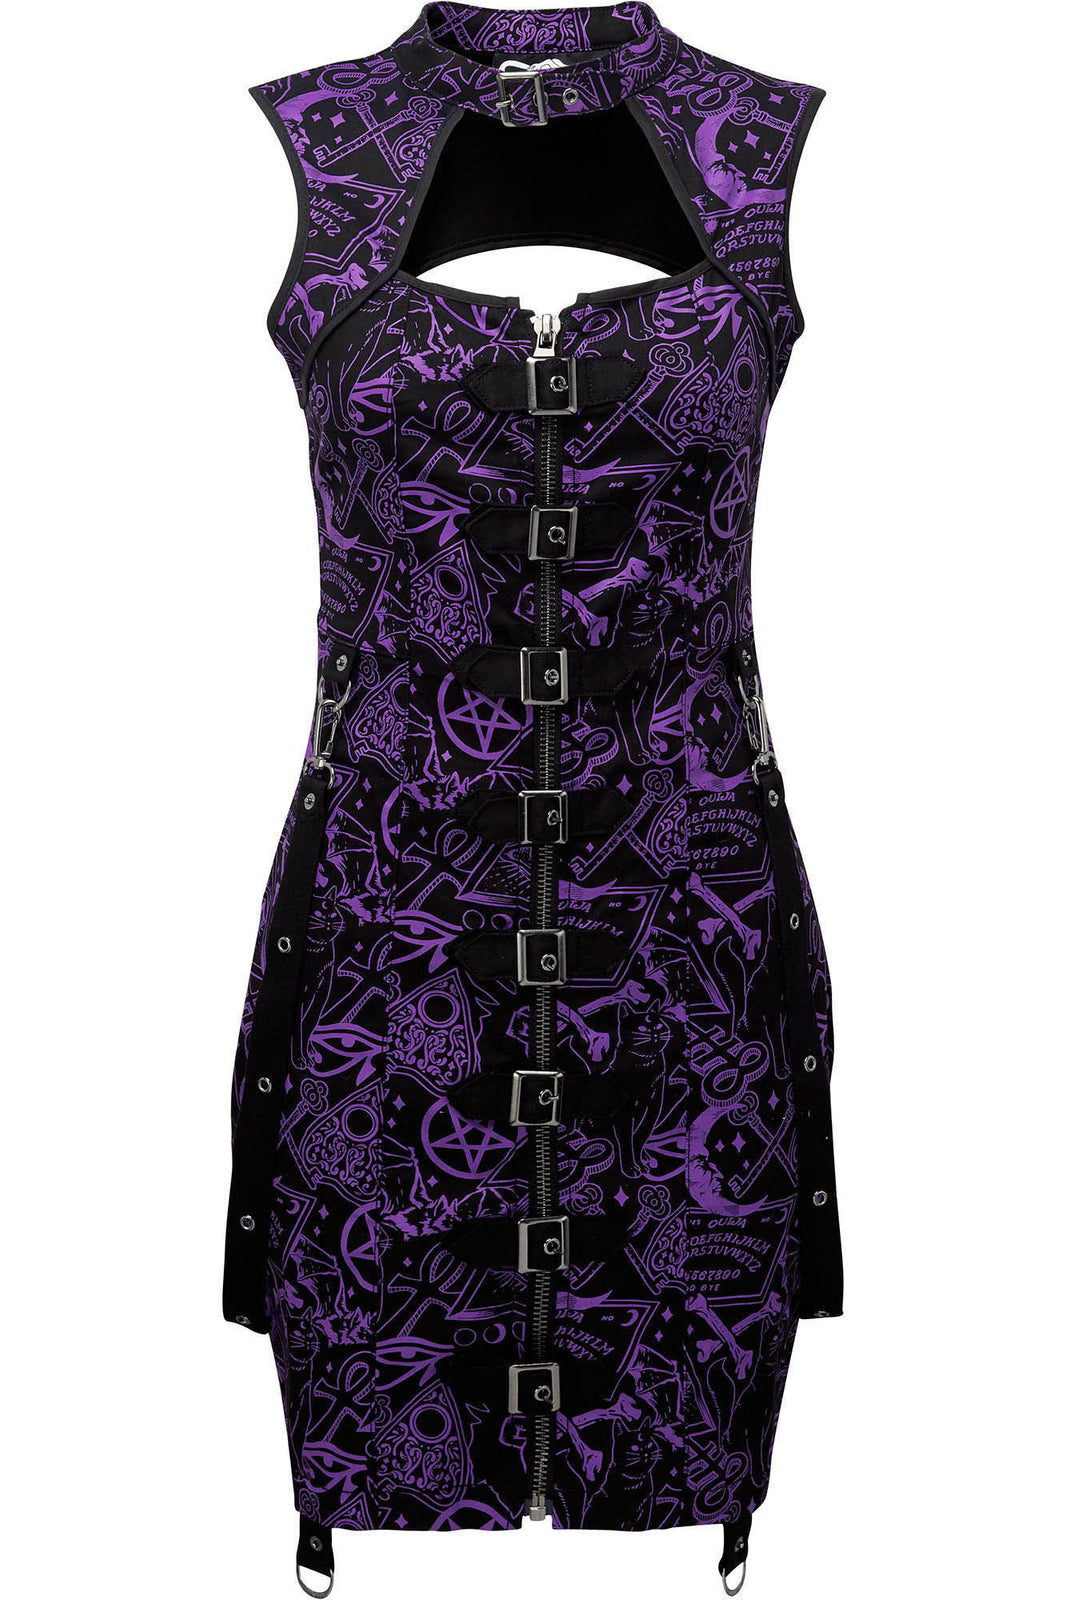 Miss Morbid Buckle-Up Dress [B]